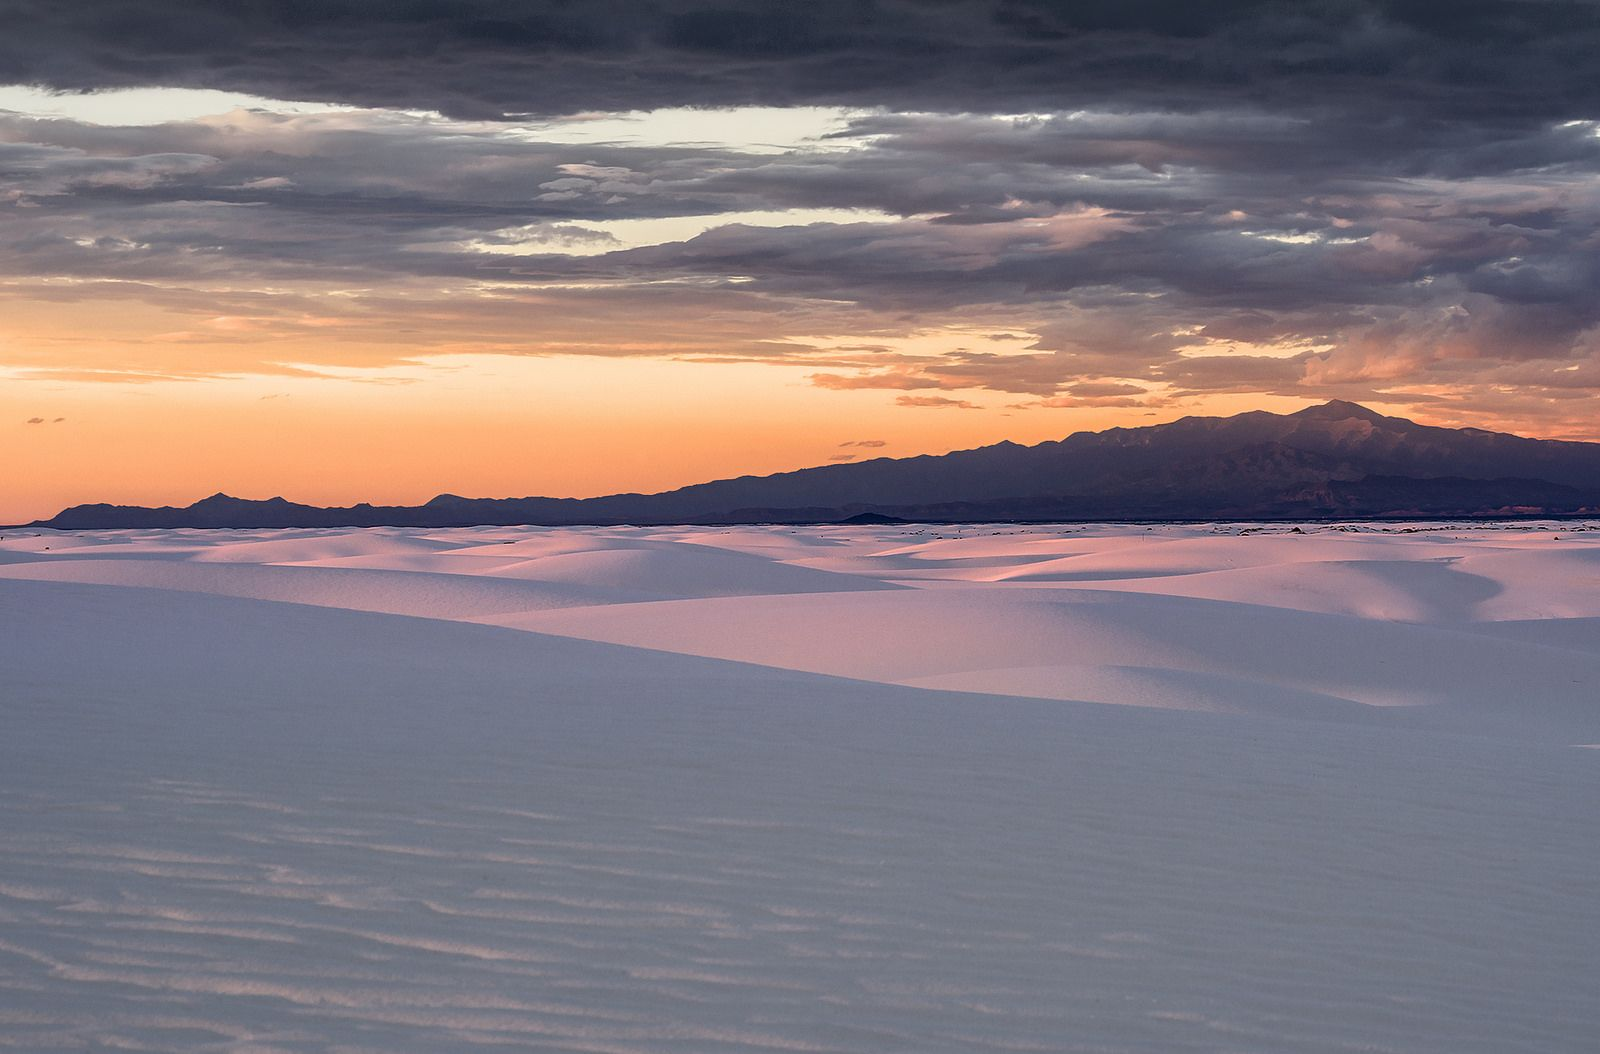 White Sands National Monument, New Mexico, USA | by weesam2010